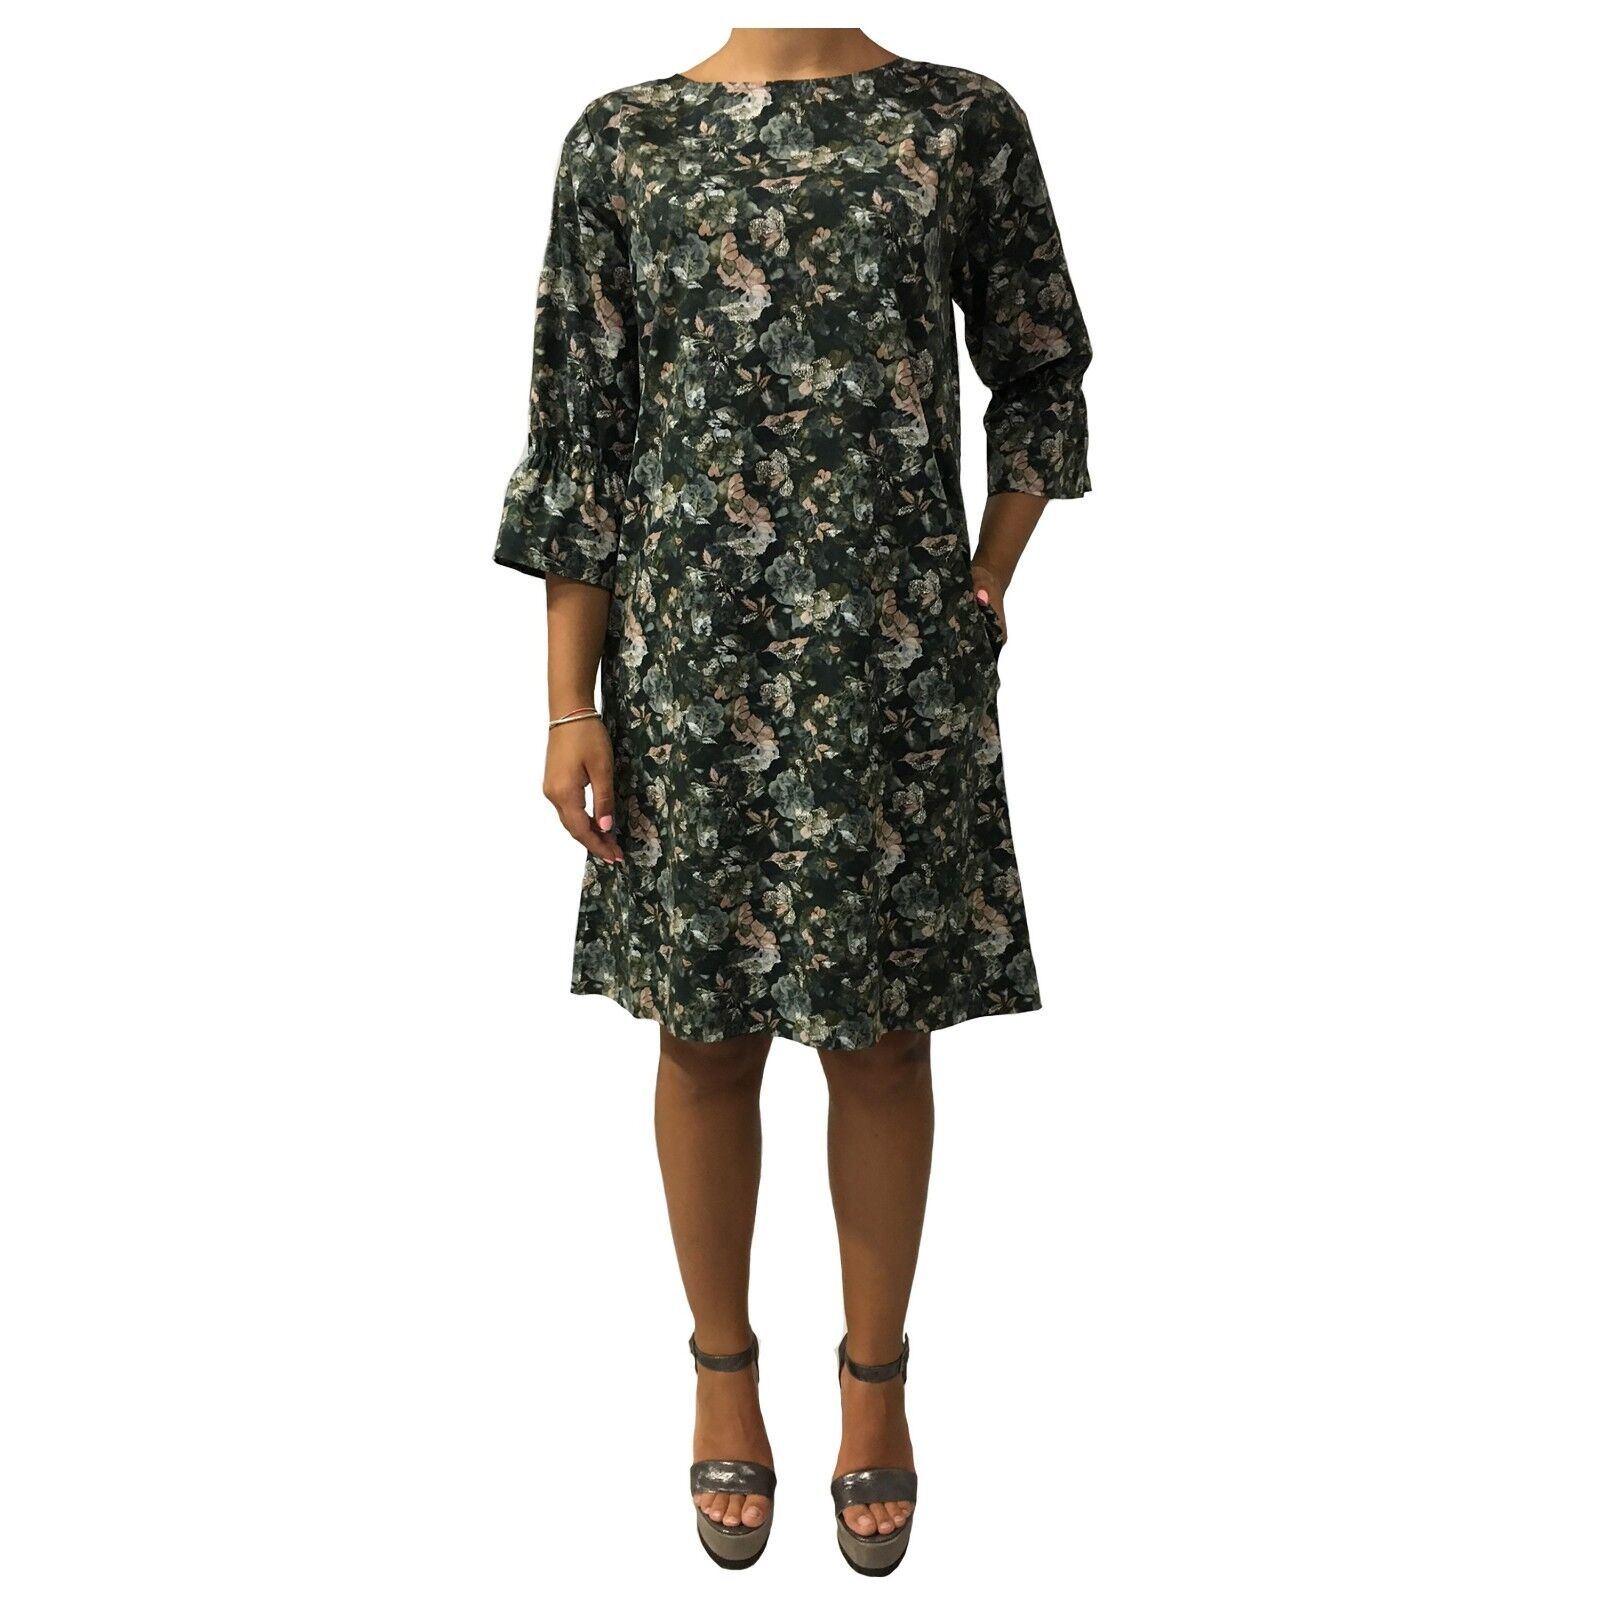 WETPAINT women's dress green fantasy 97% cotton 3% elastane MADE IN ITALY